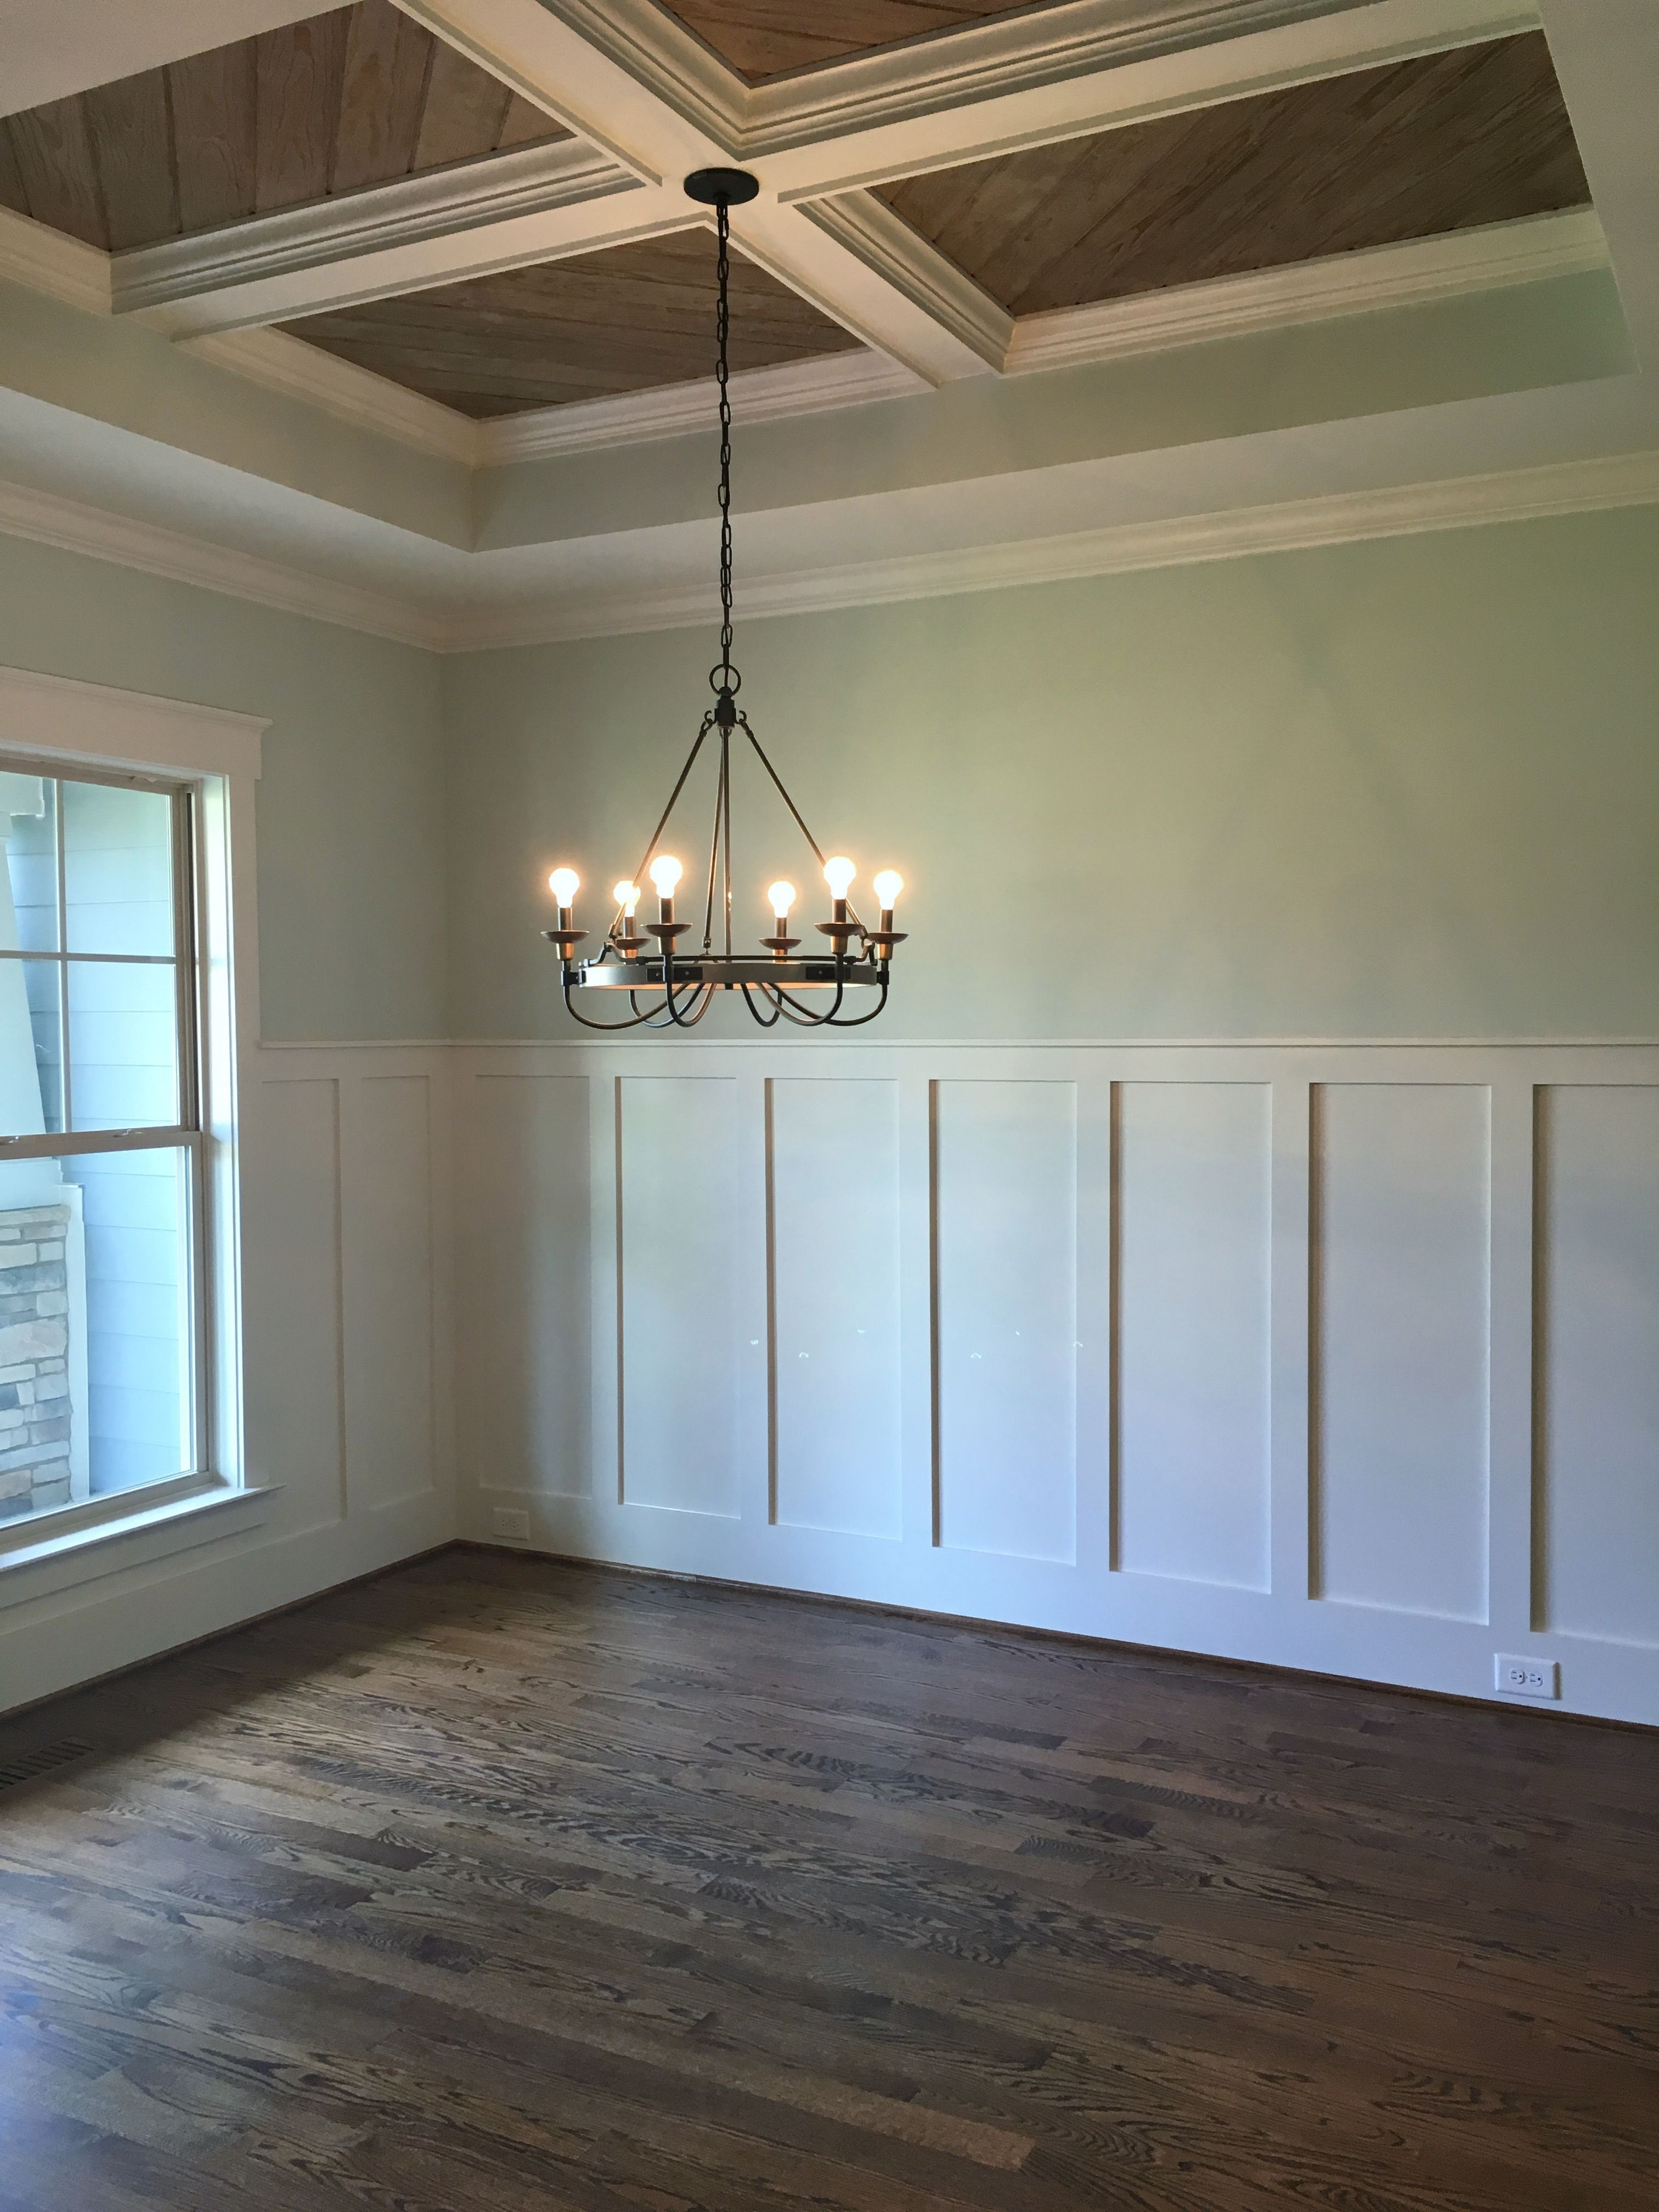 9 Wonderful Diy Ideas: Wainscoting Dining Room Colour tall ...